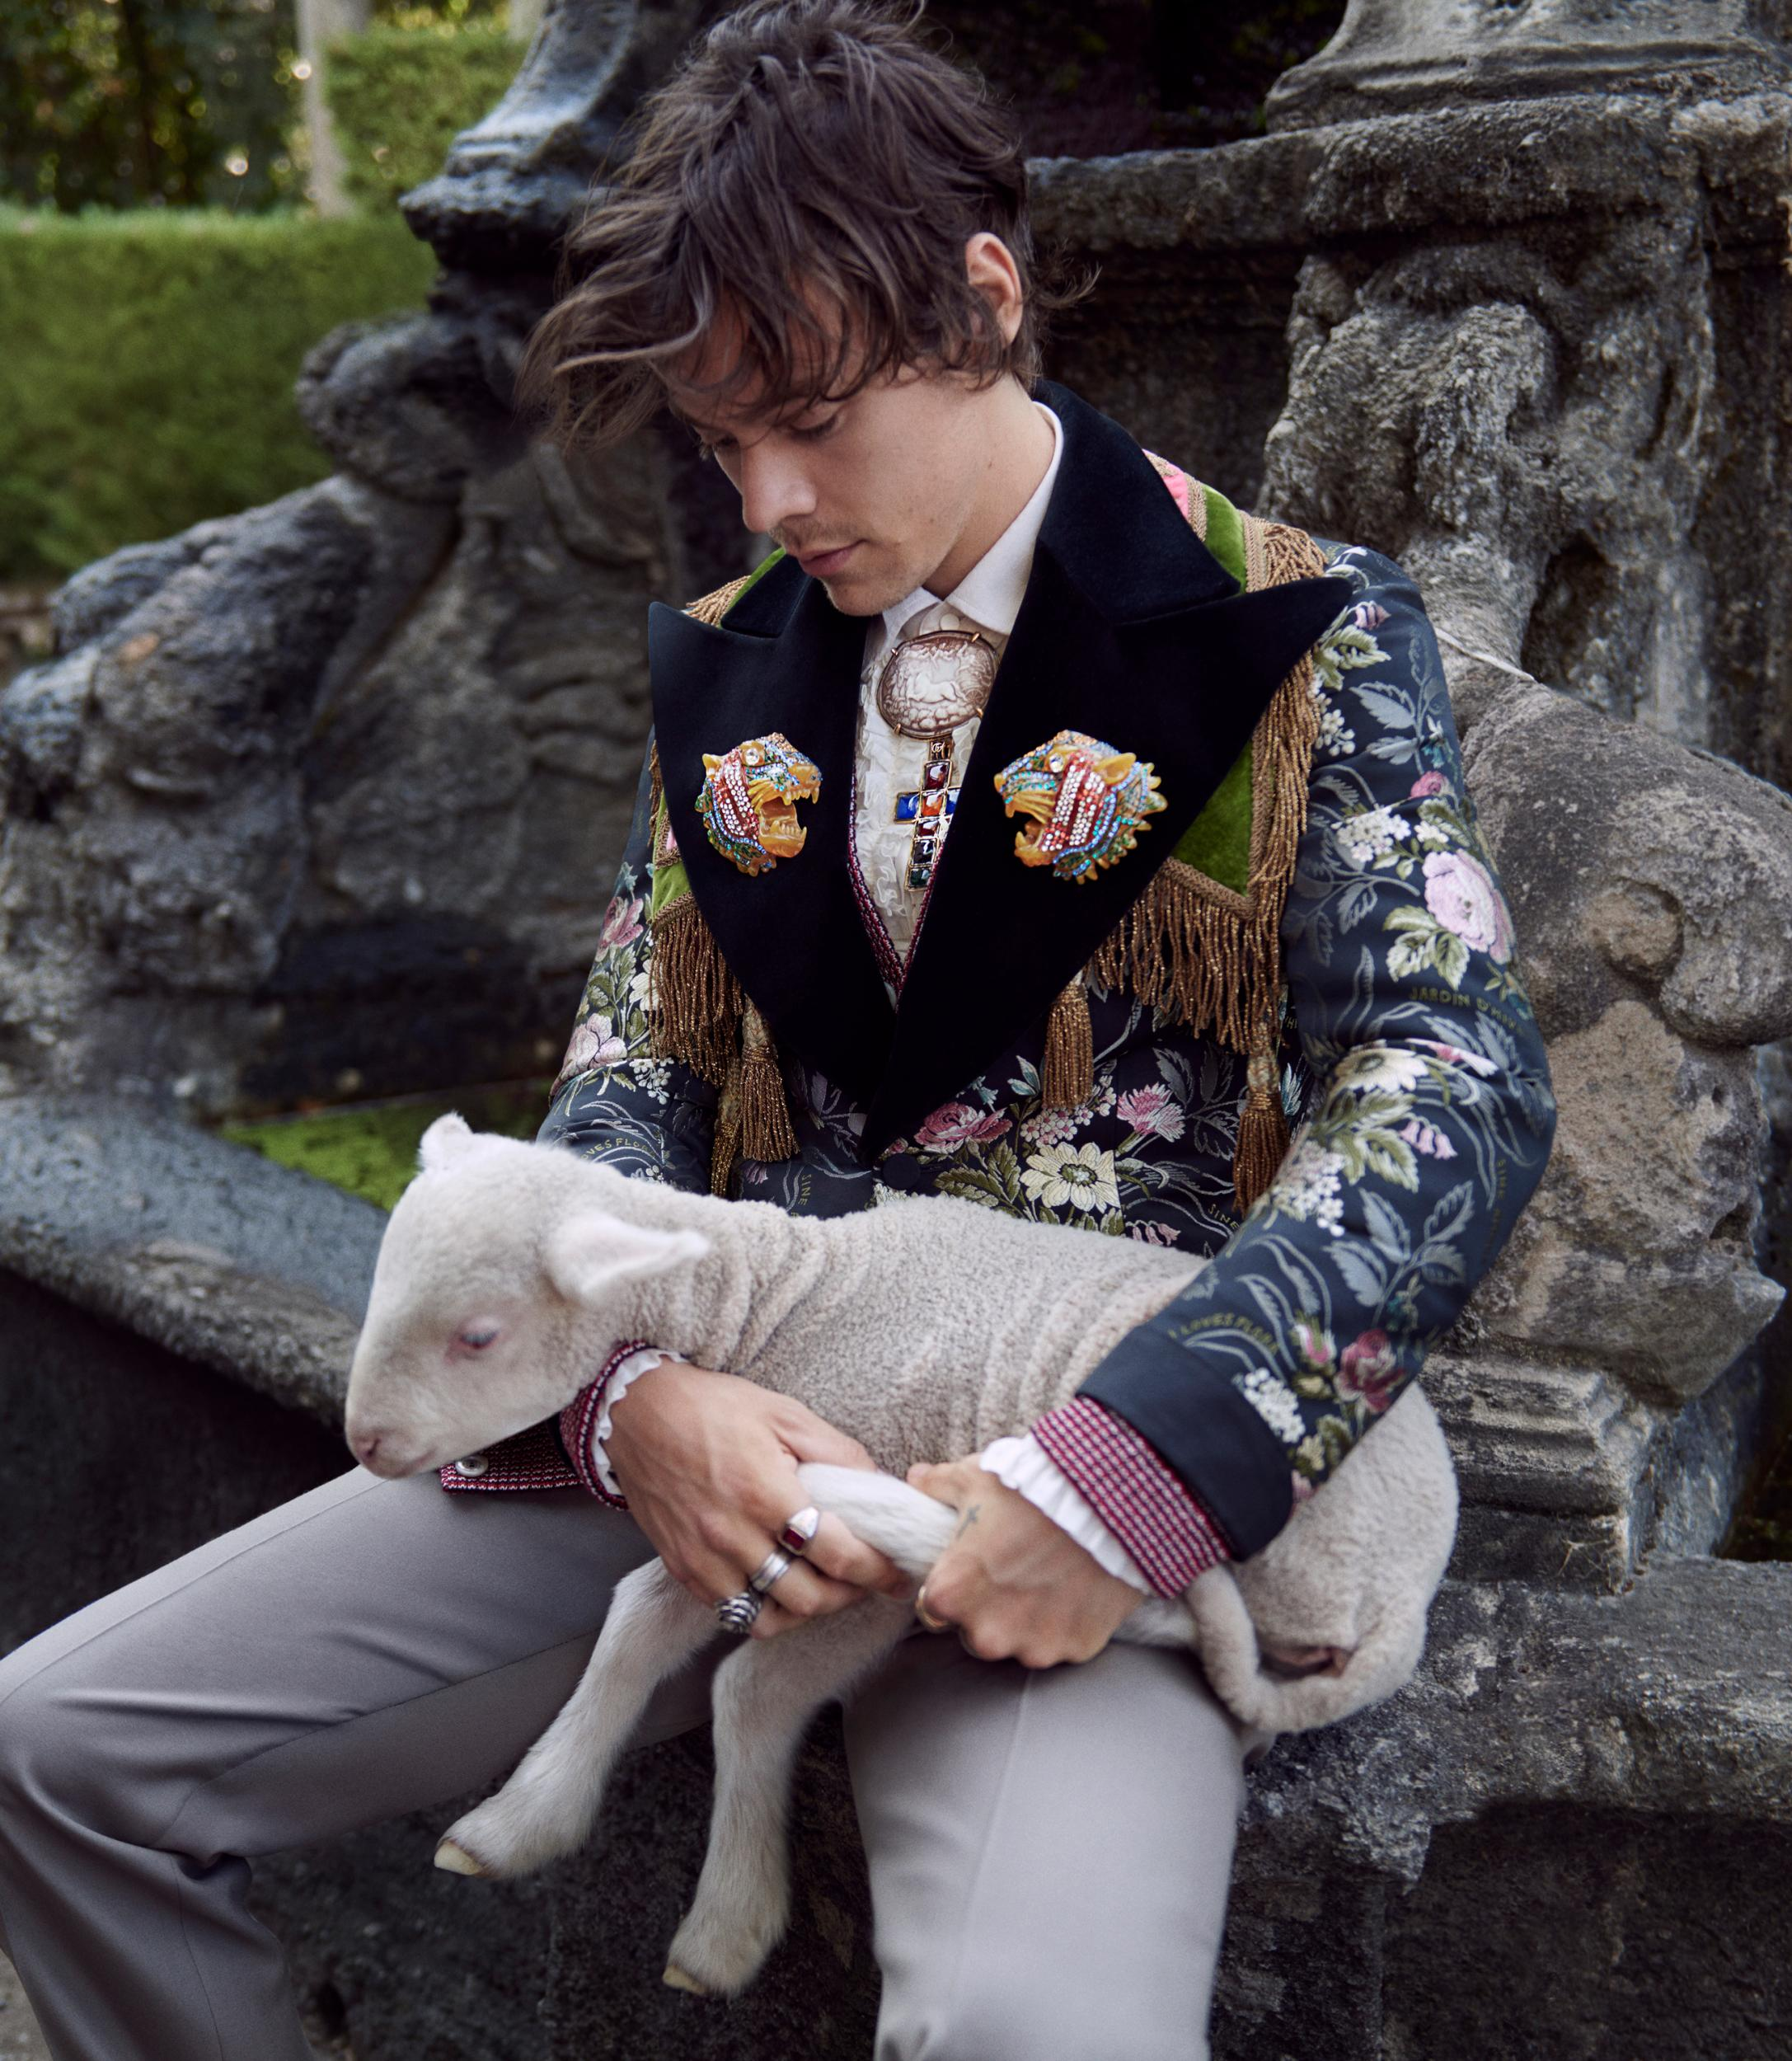 on sale 81c31 d2b4d Harry Styles fronts Gucci campaign with baby pigs and goats ...